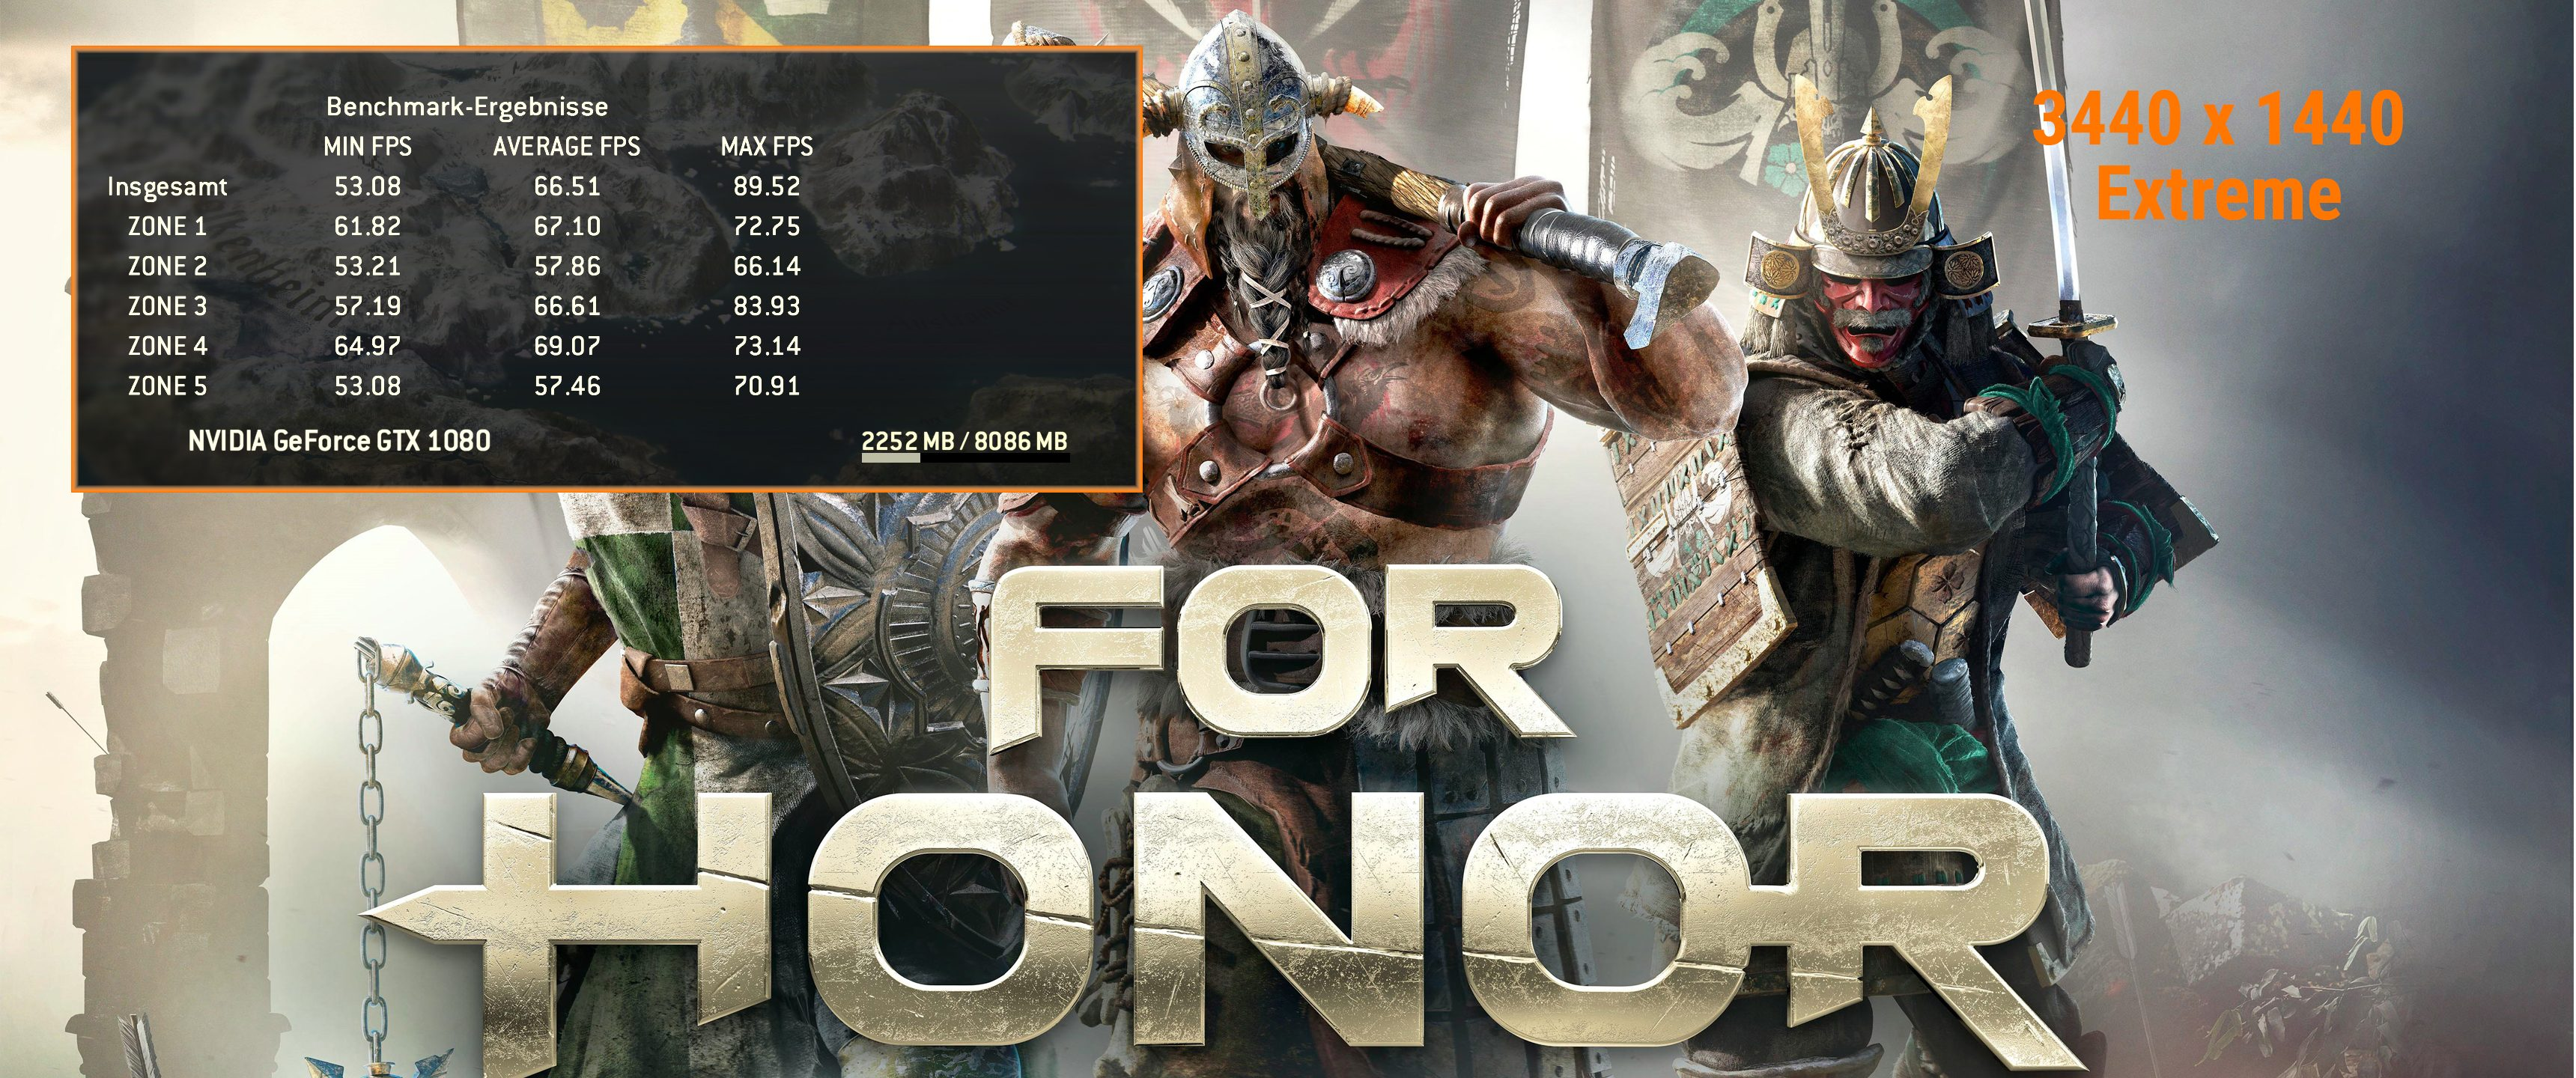 Game-9-3440-forhonor-extreme